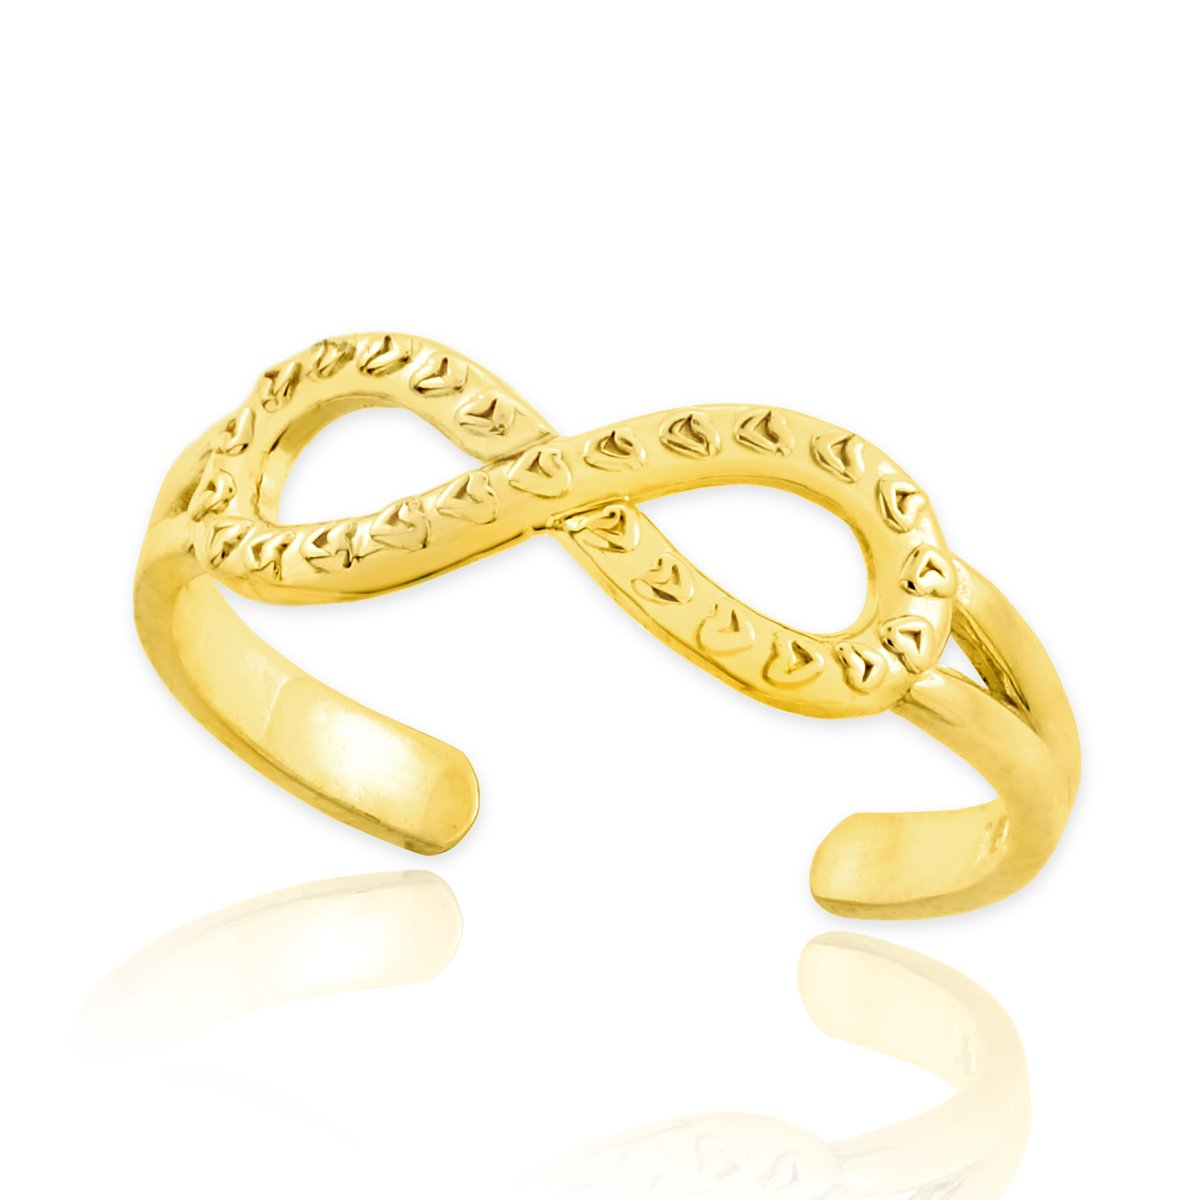 14k Gold Infinity Toe Ring with Hearts Texture by More Toe Rings